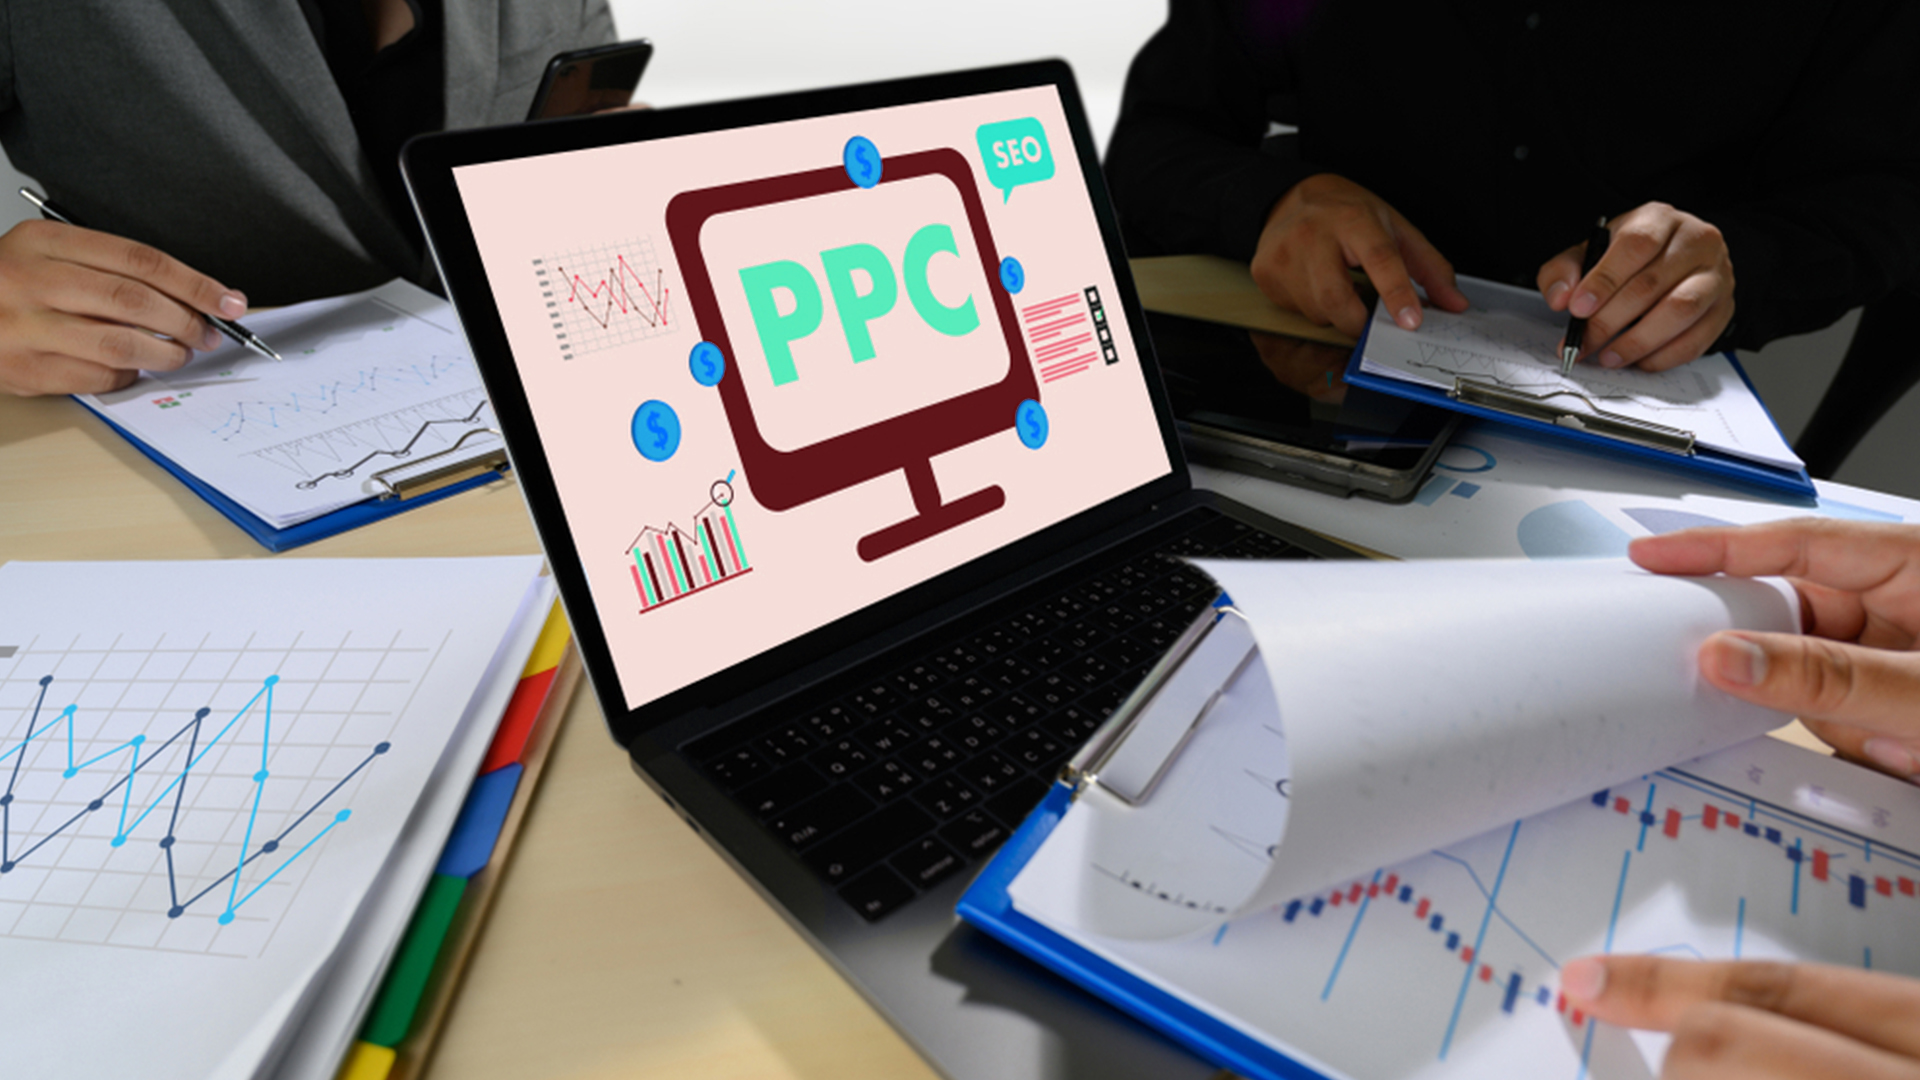 What's going on with your PPC campaign?